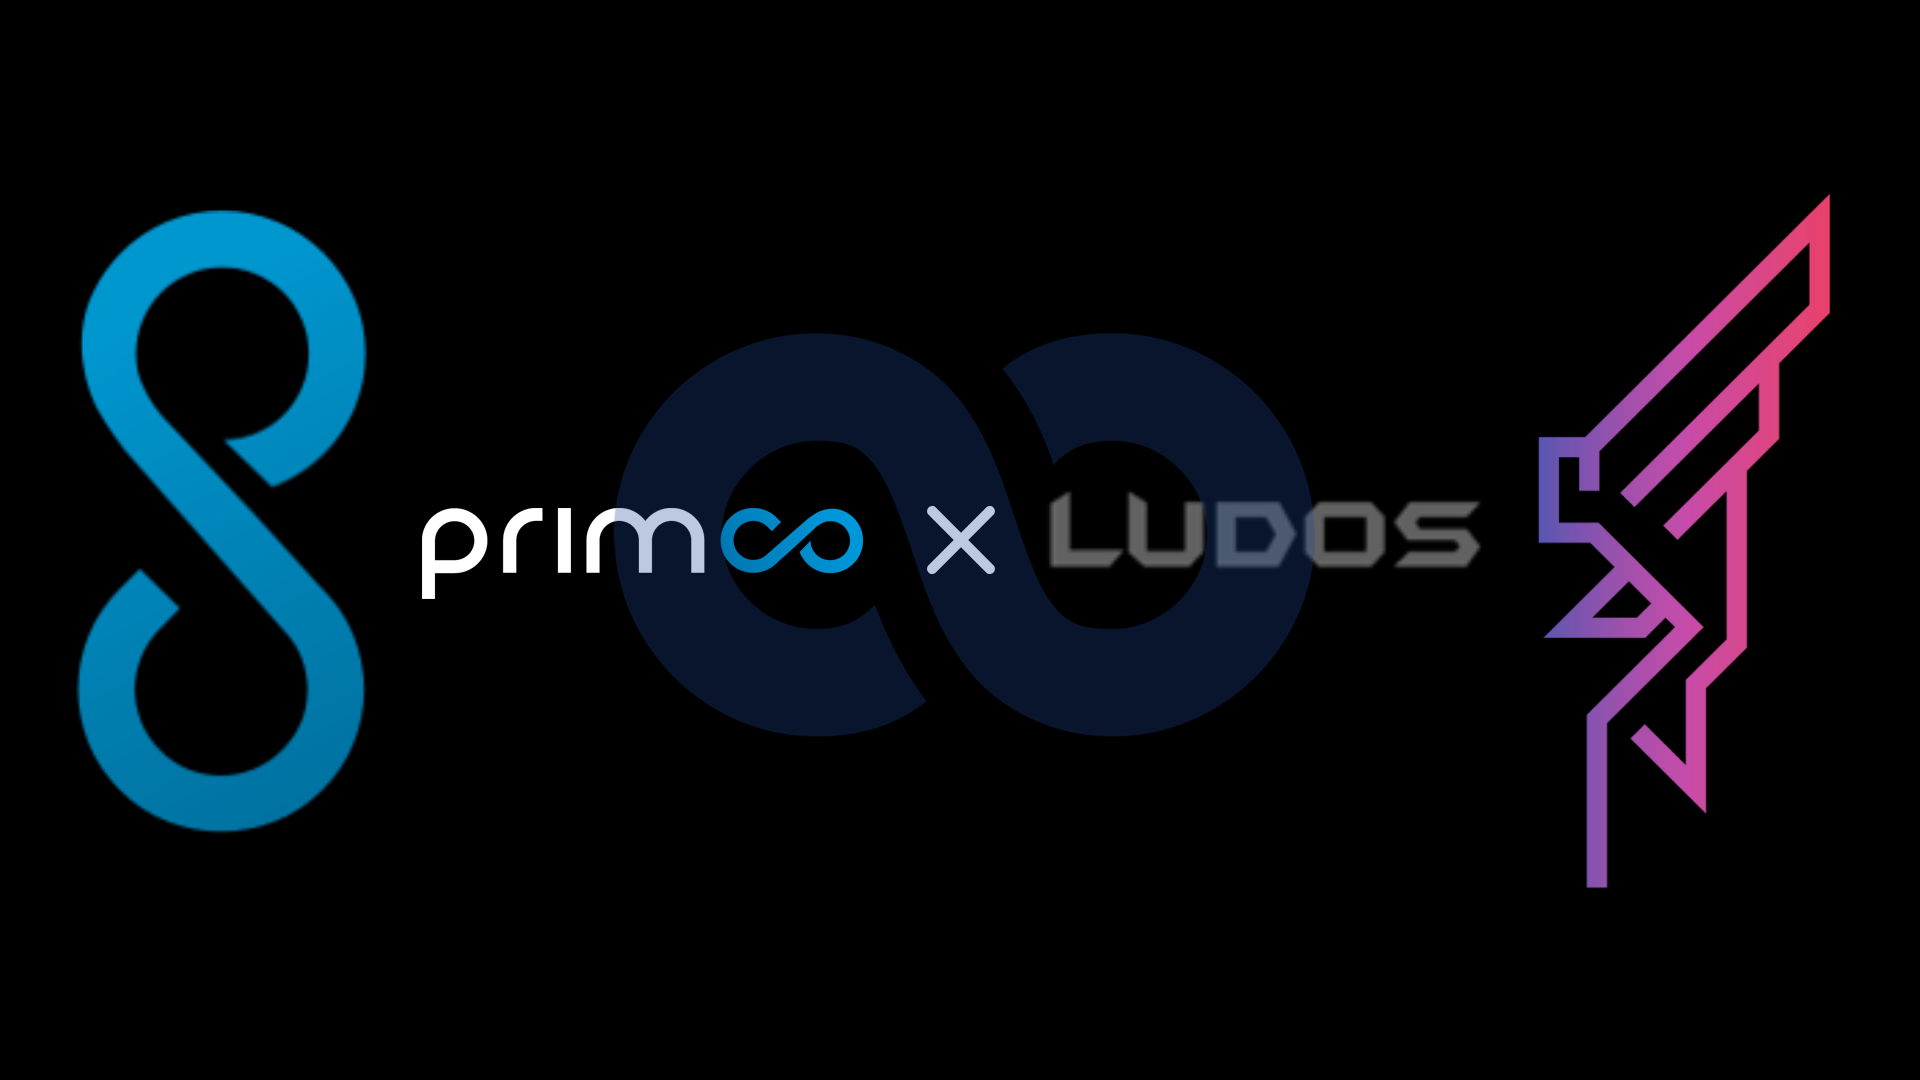 Primco Facilitates Rewards for Ludos Protocol's Early Community Members